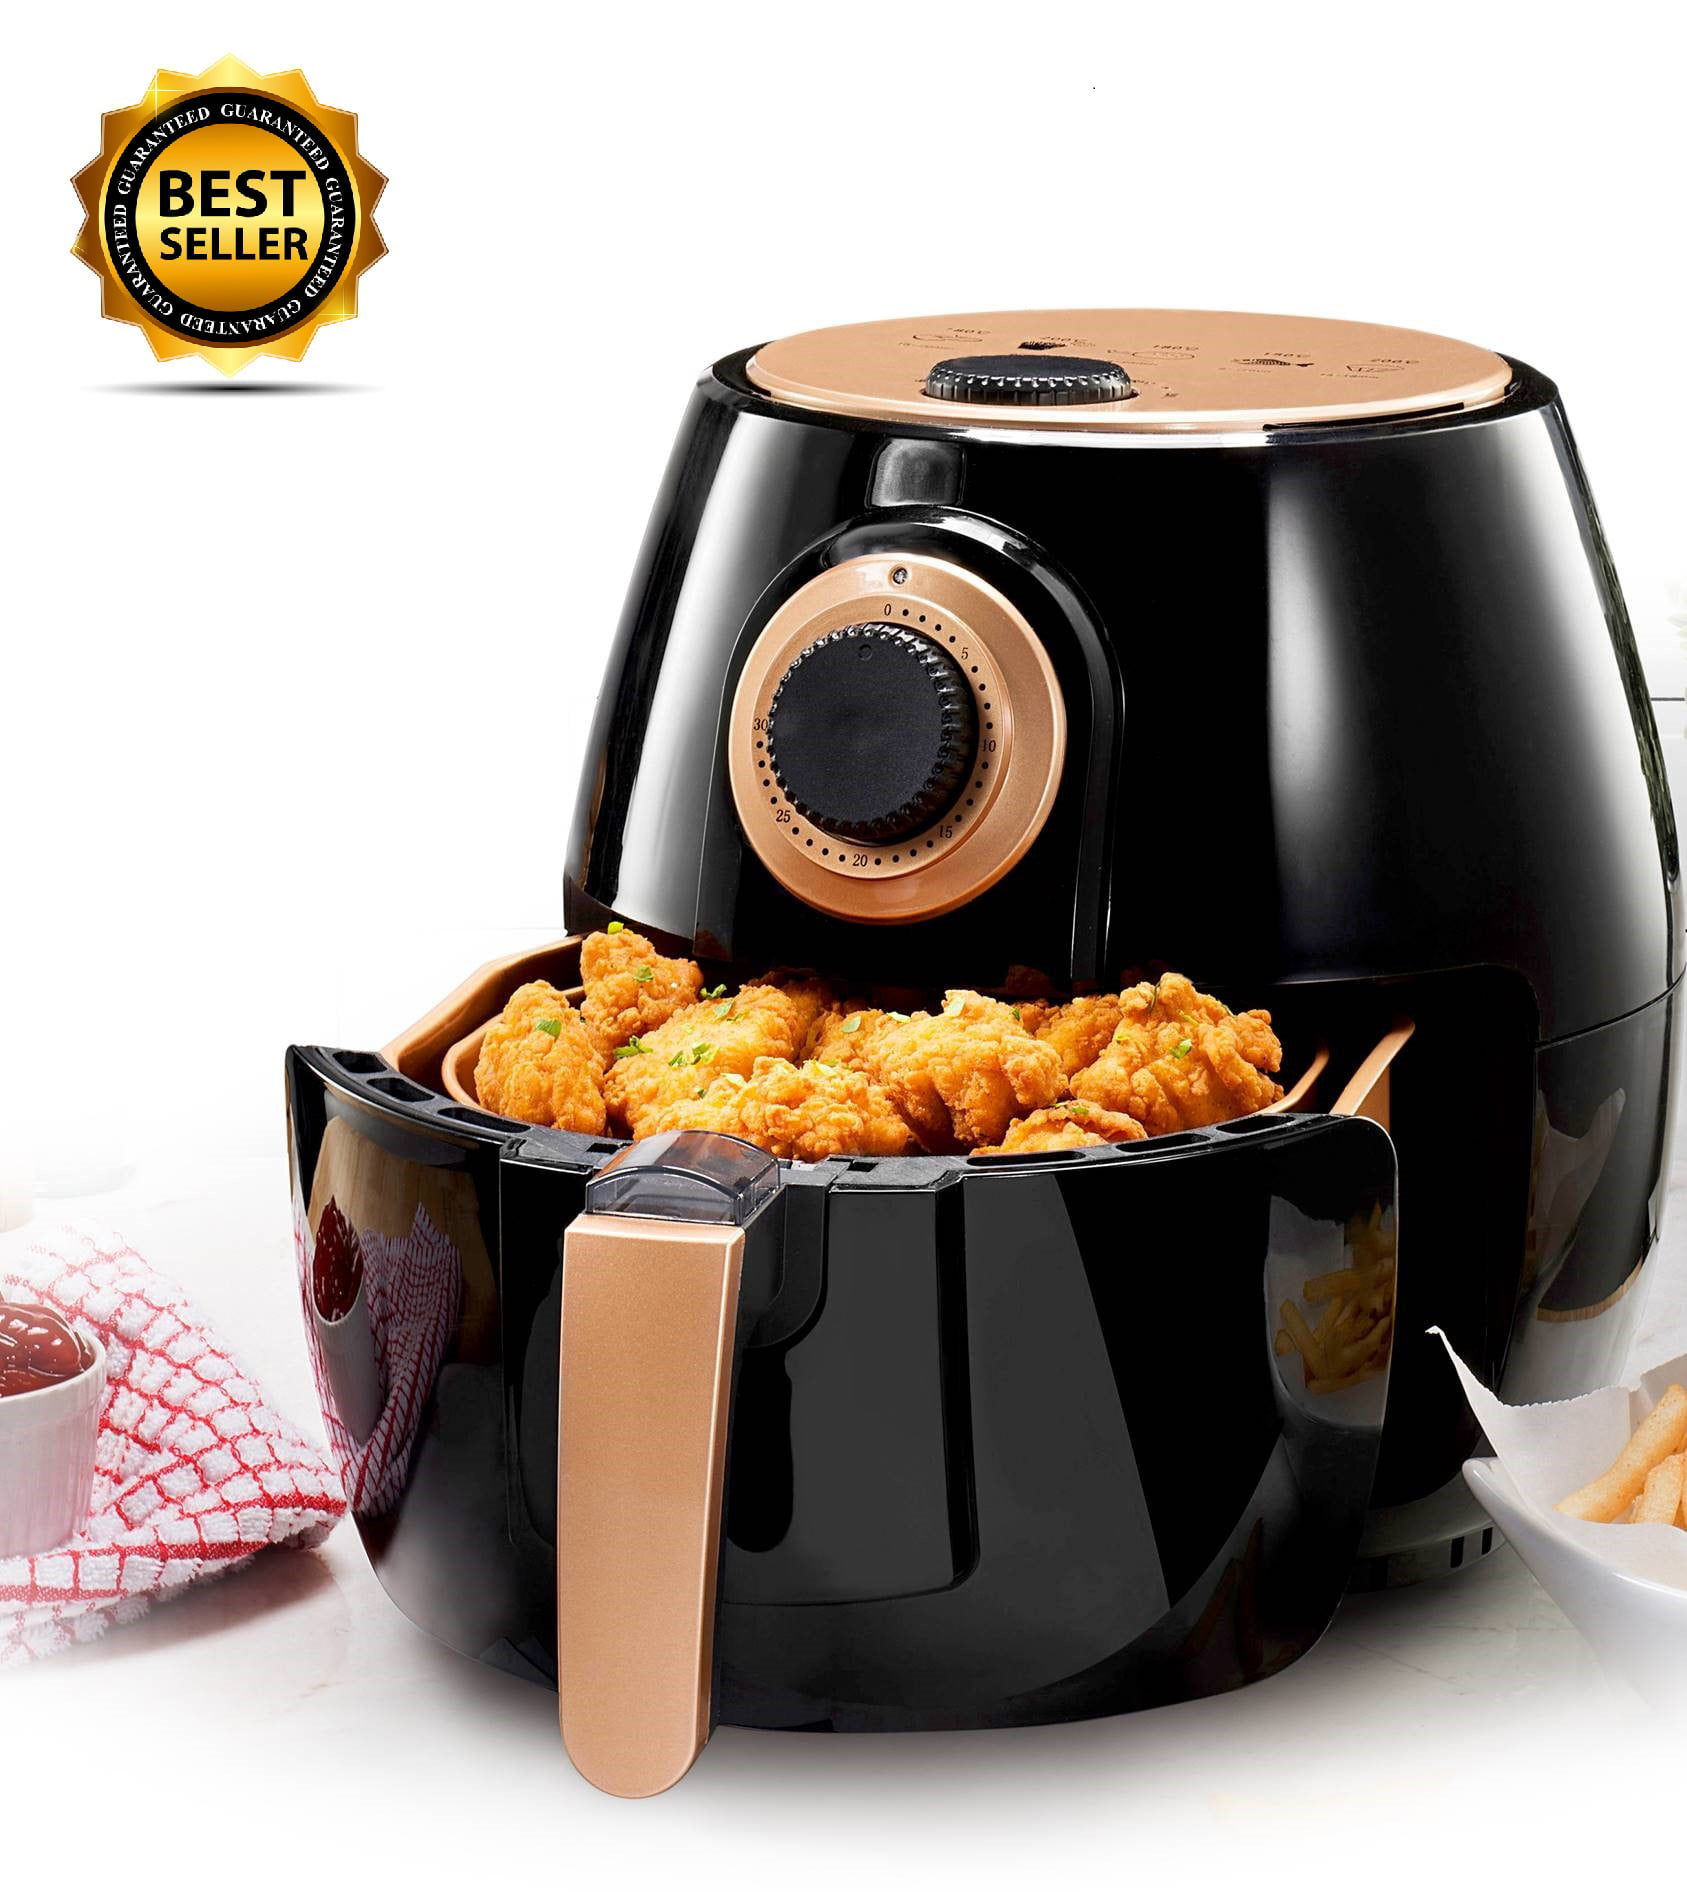 Gotham Steel Air Fryer 4 Quart With Included Presets